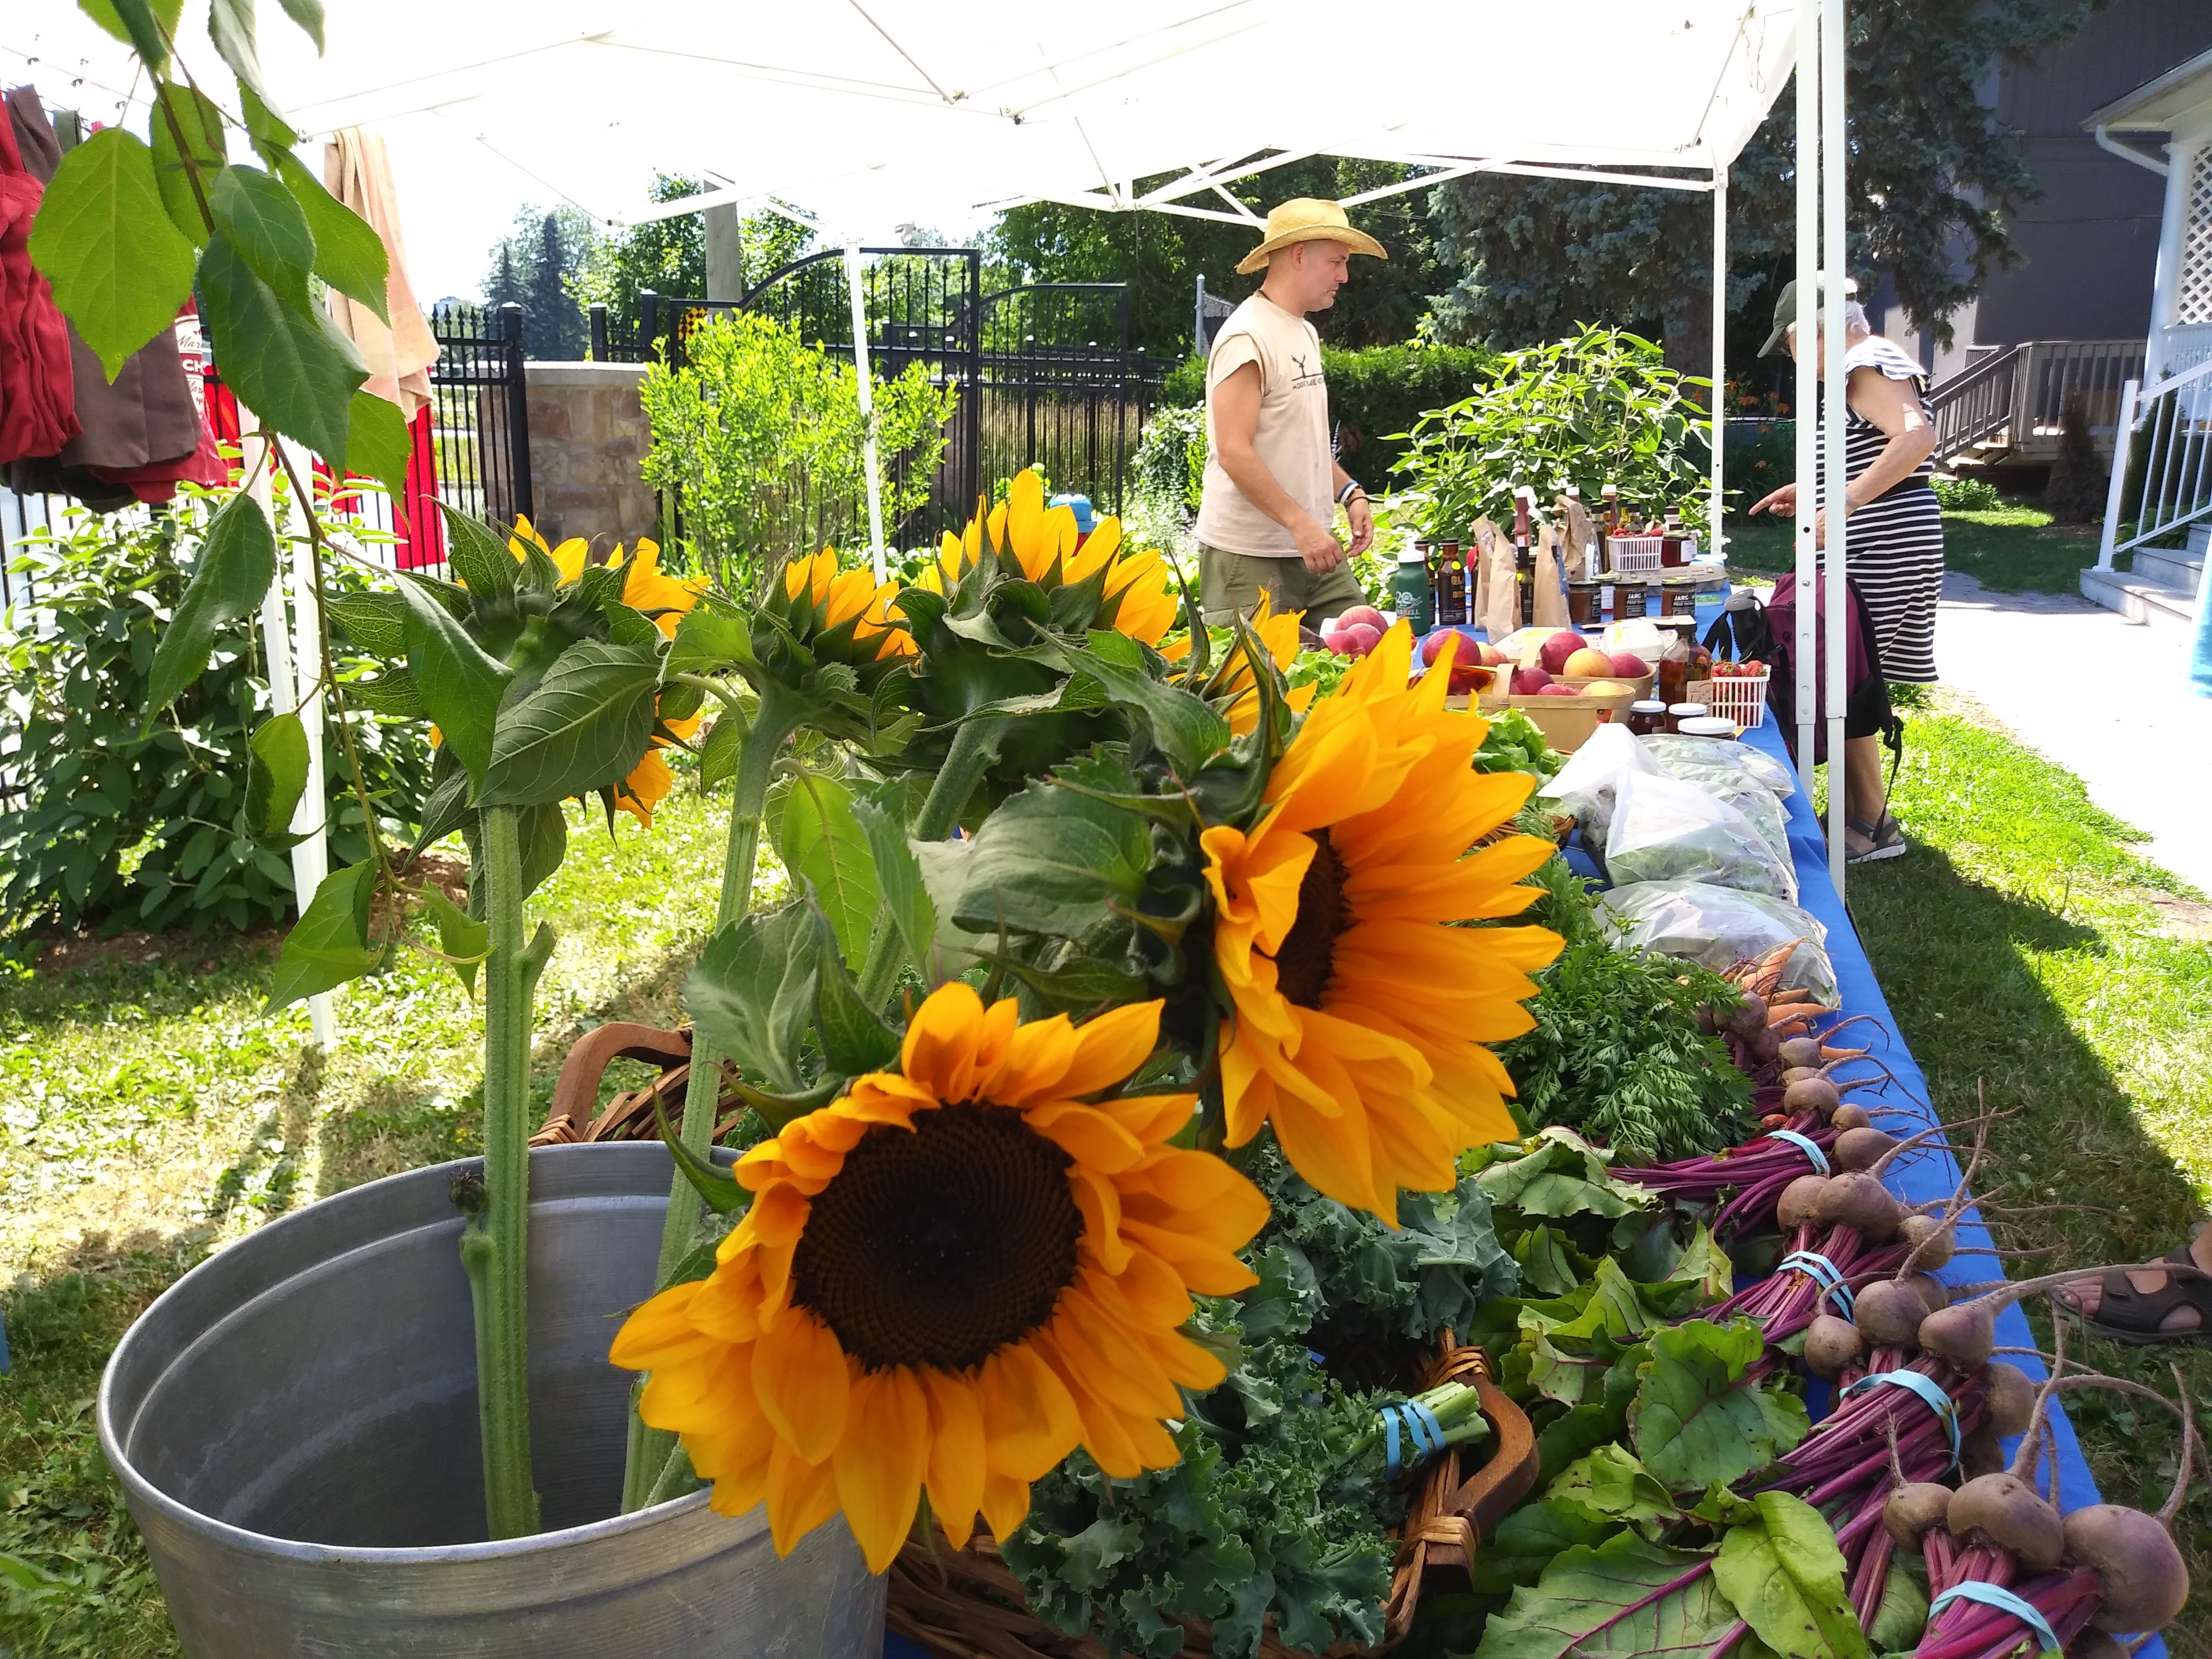 The importance of farmers' markets as food distributors